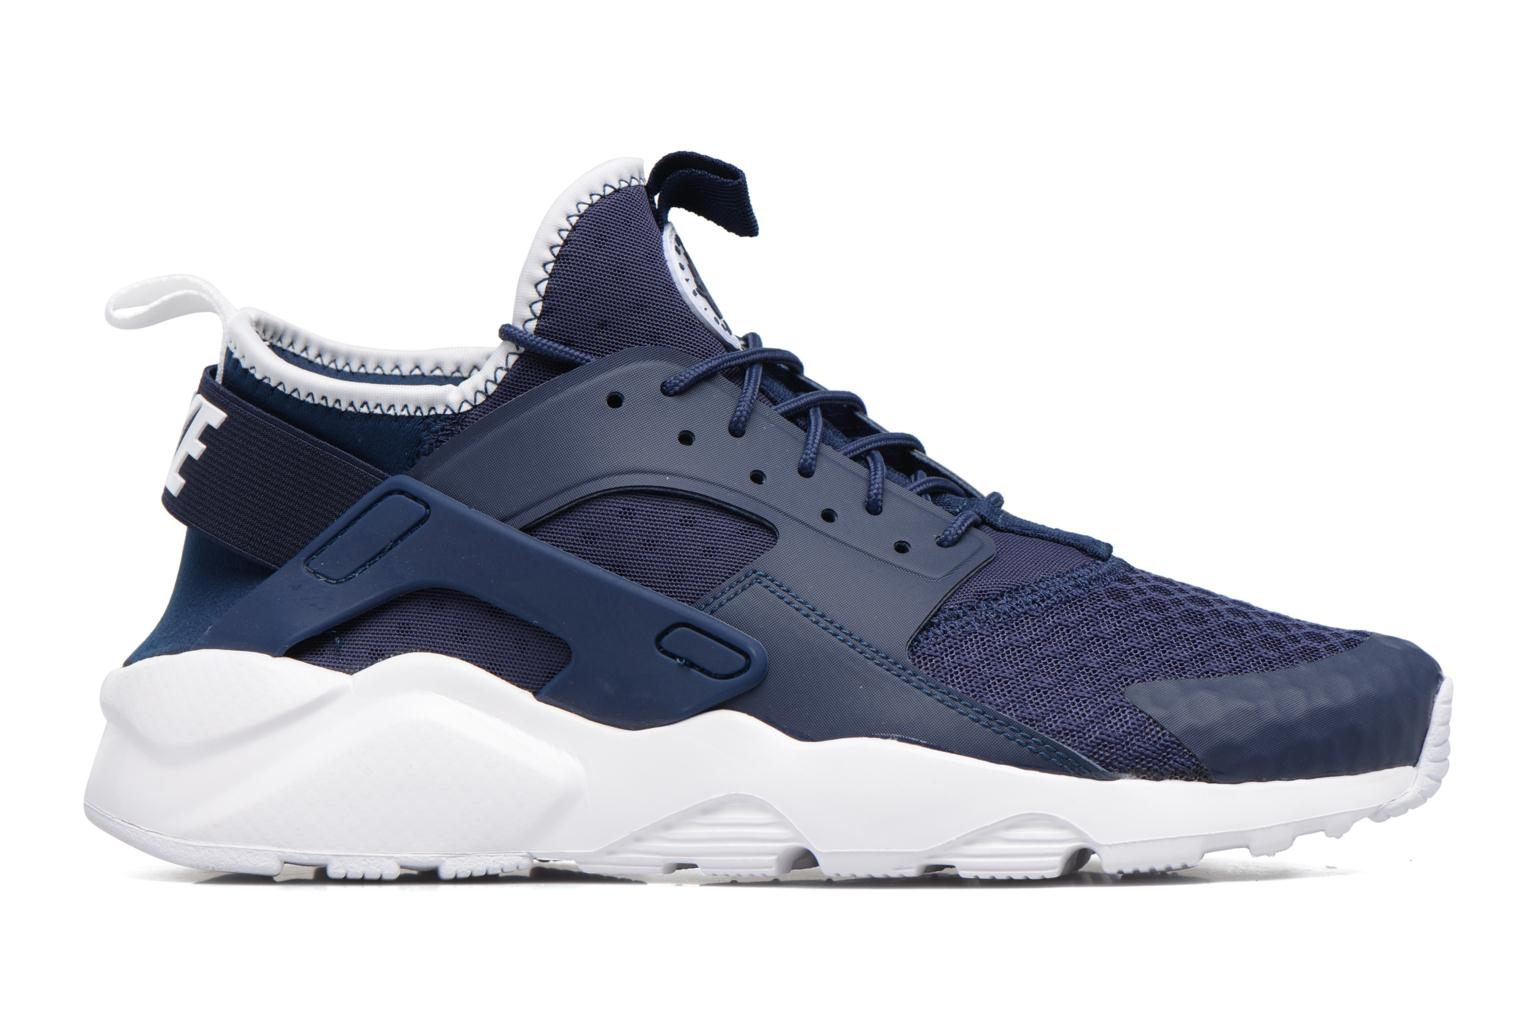 Nike Air Huarache Run Ultra Midnight Navy/Obsidian-White